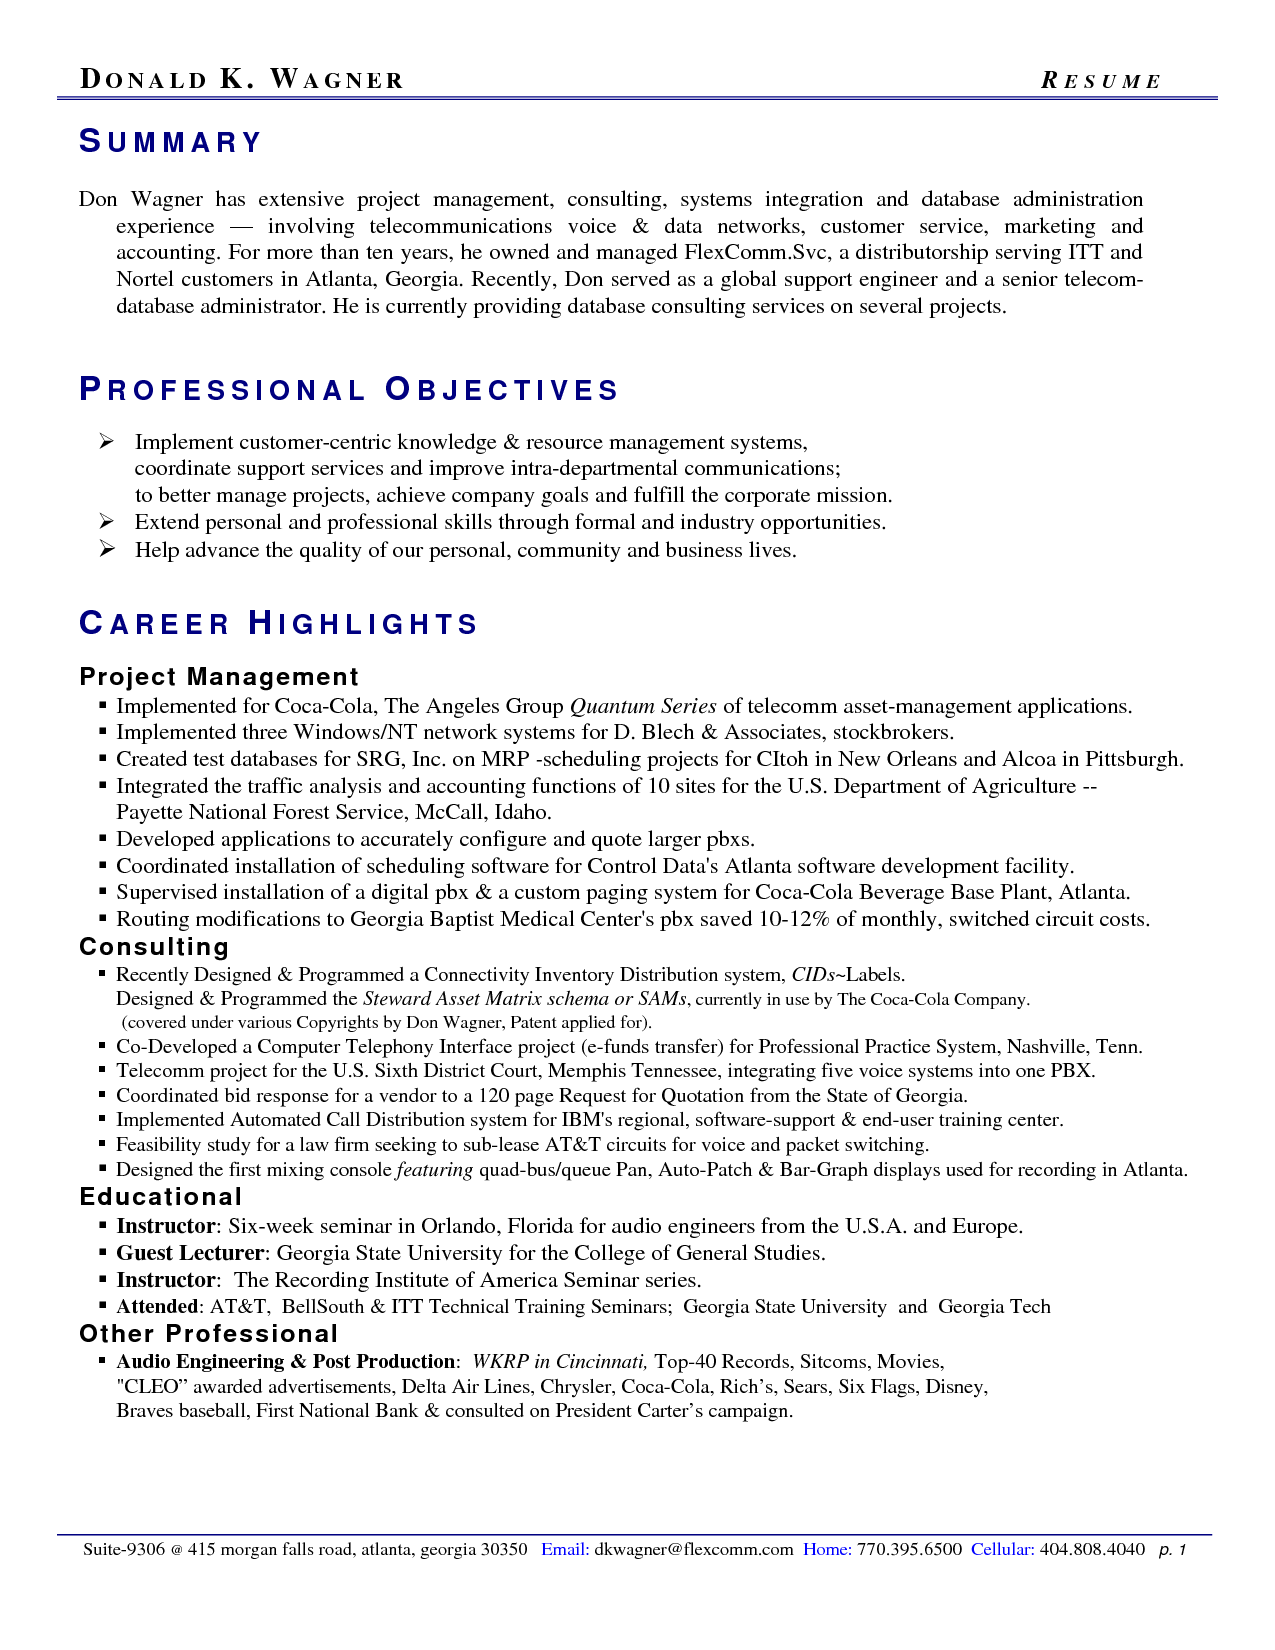 Professional Summary Resume Gorgeous Amazing Resume Professional Summary Statement Writing Sample Decorating Design